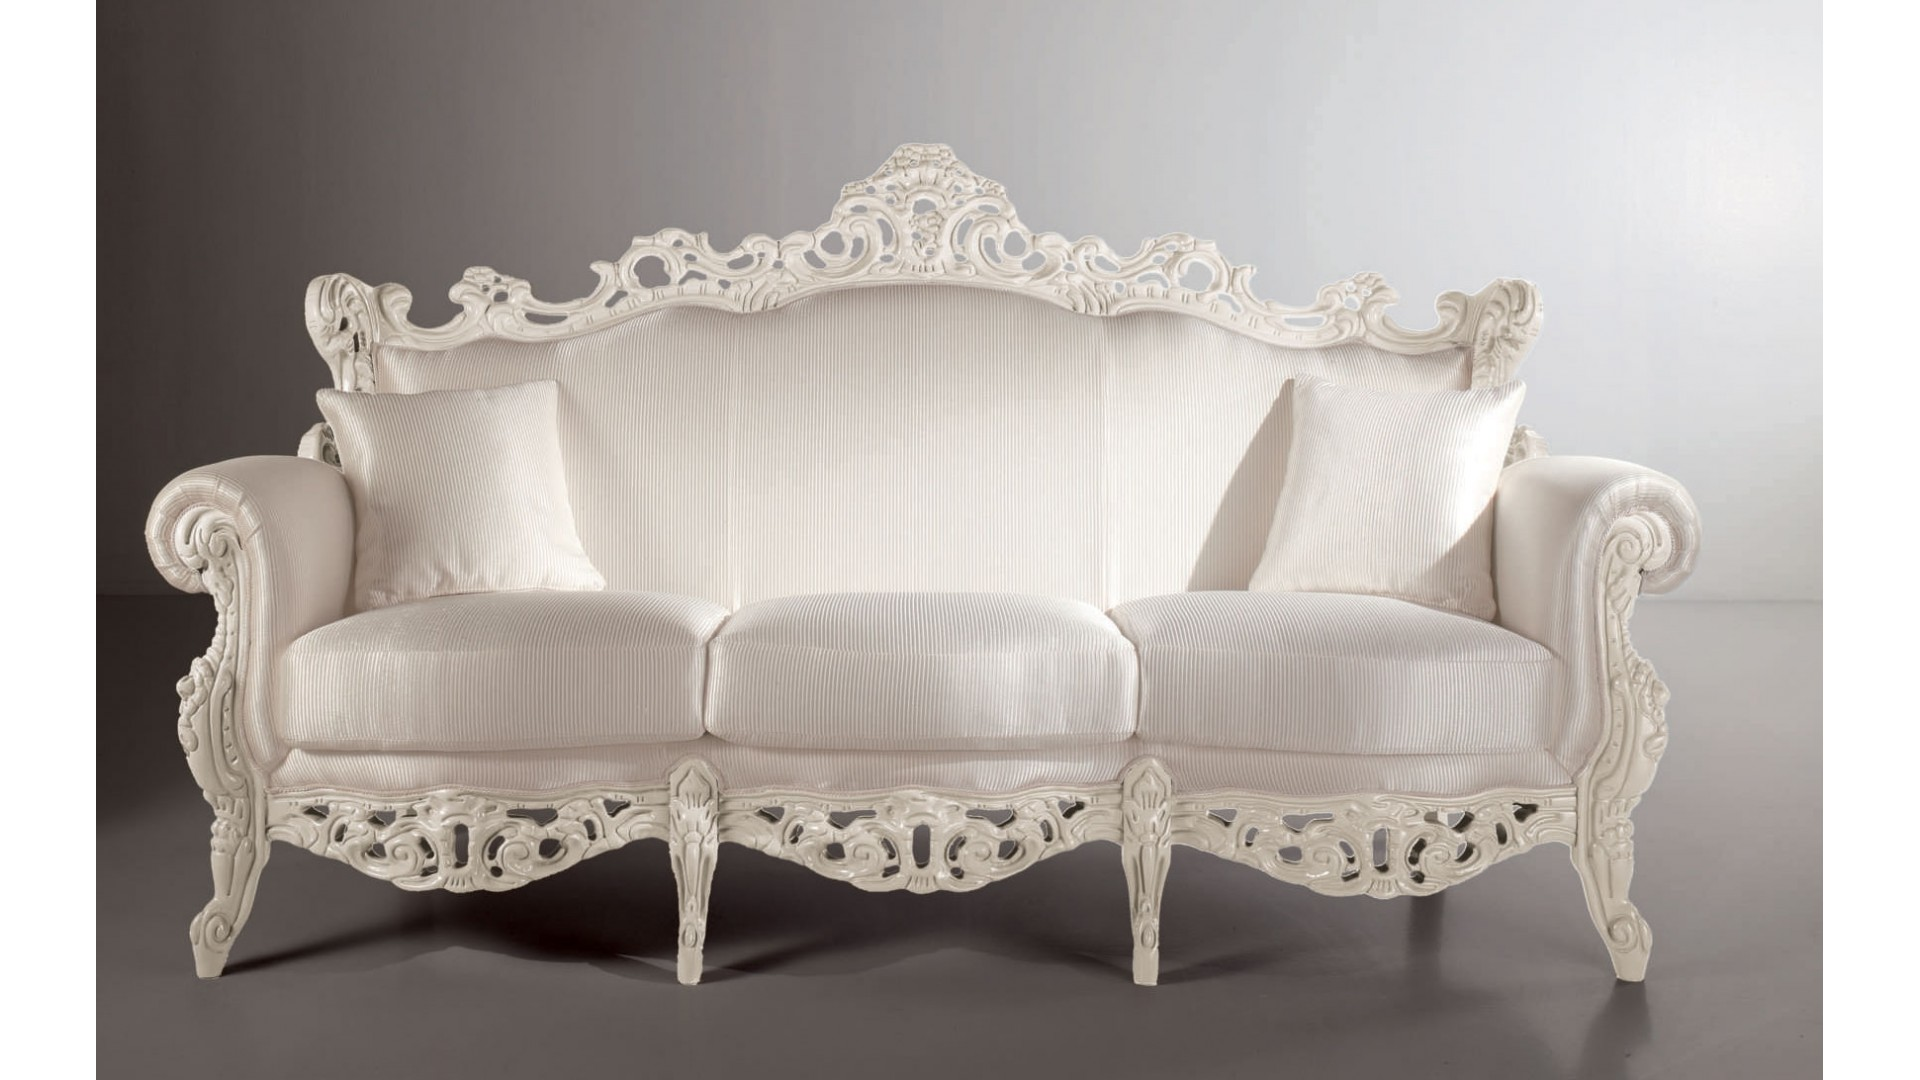 Divan Decor PERSONNALISABLE - PIERMARIA